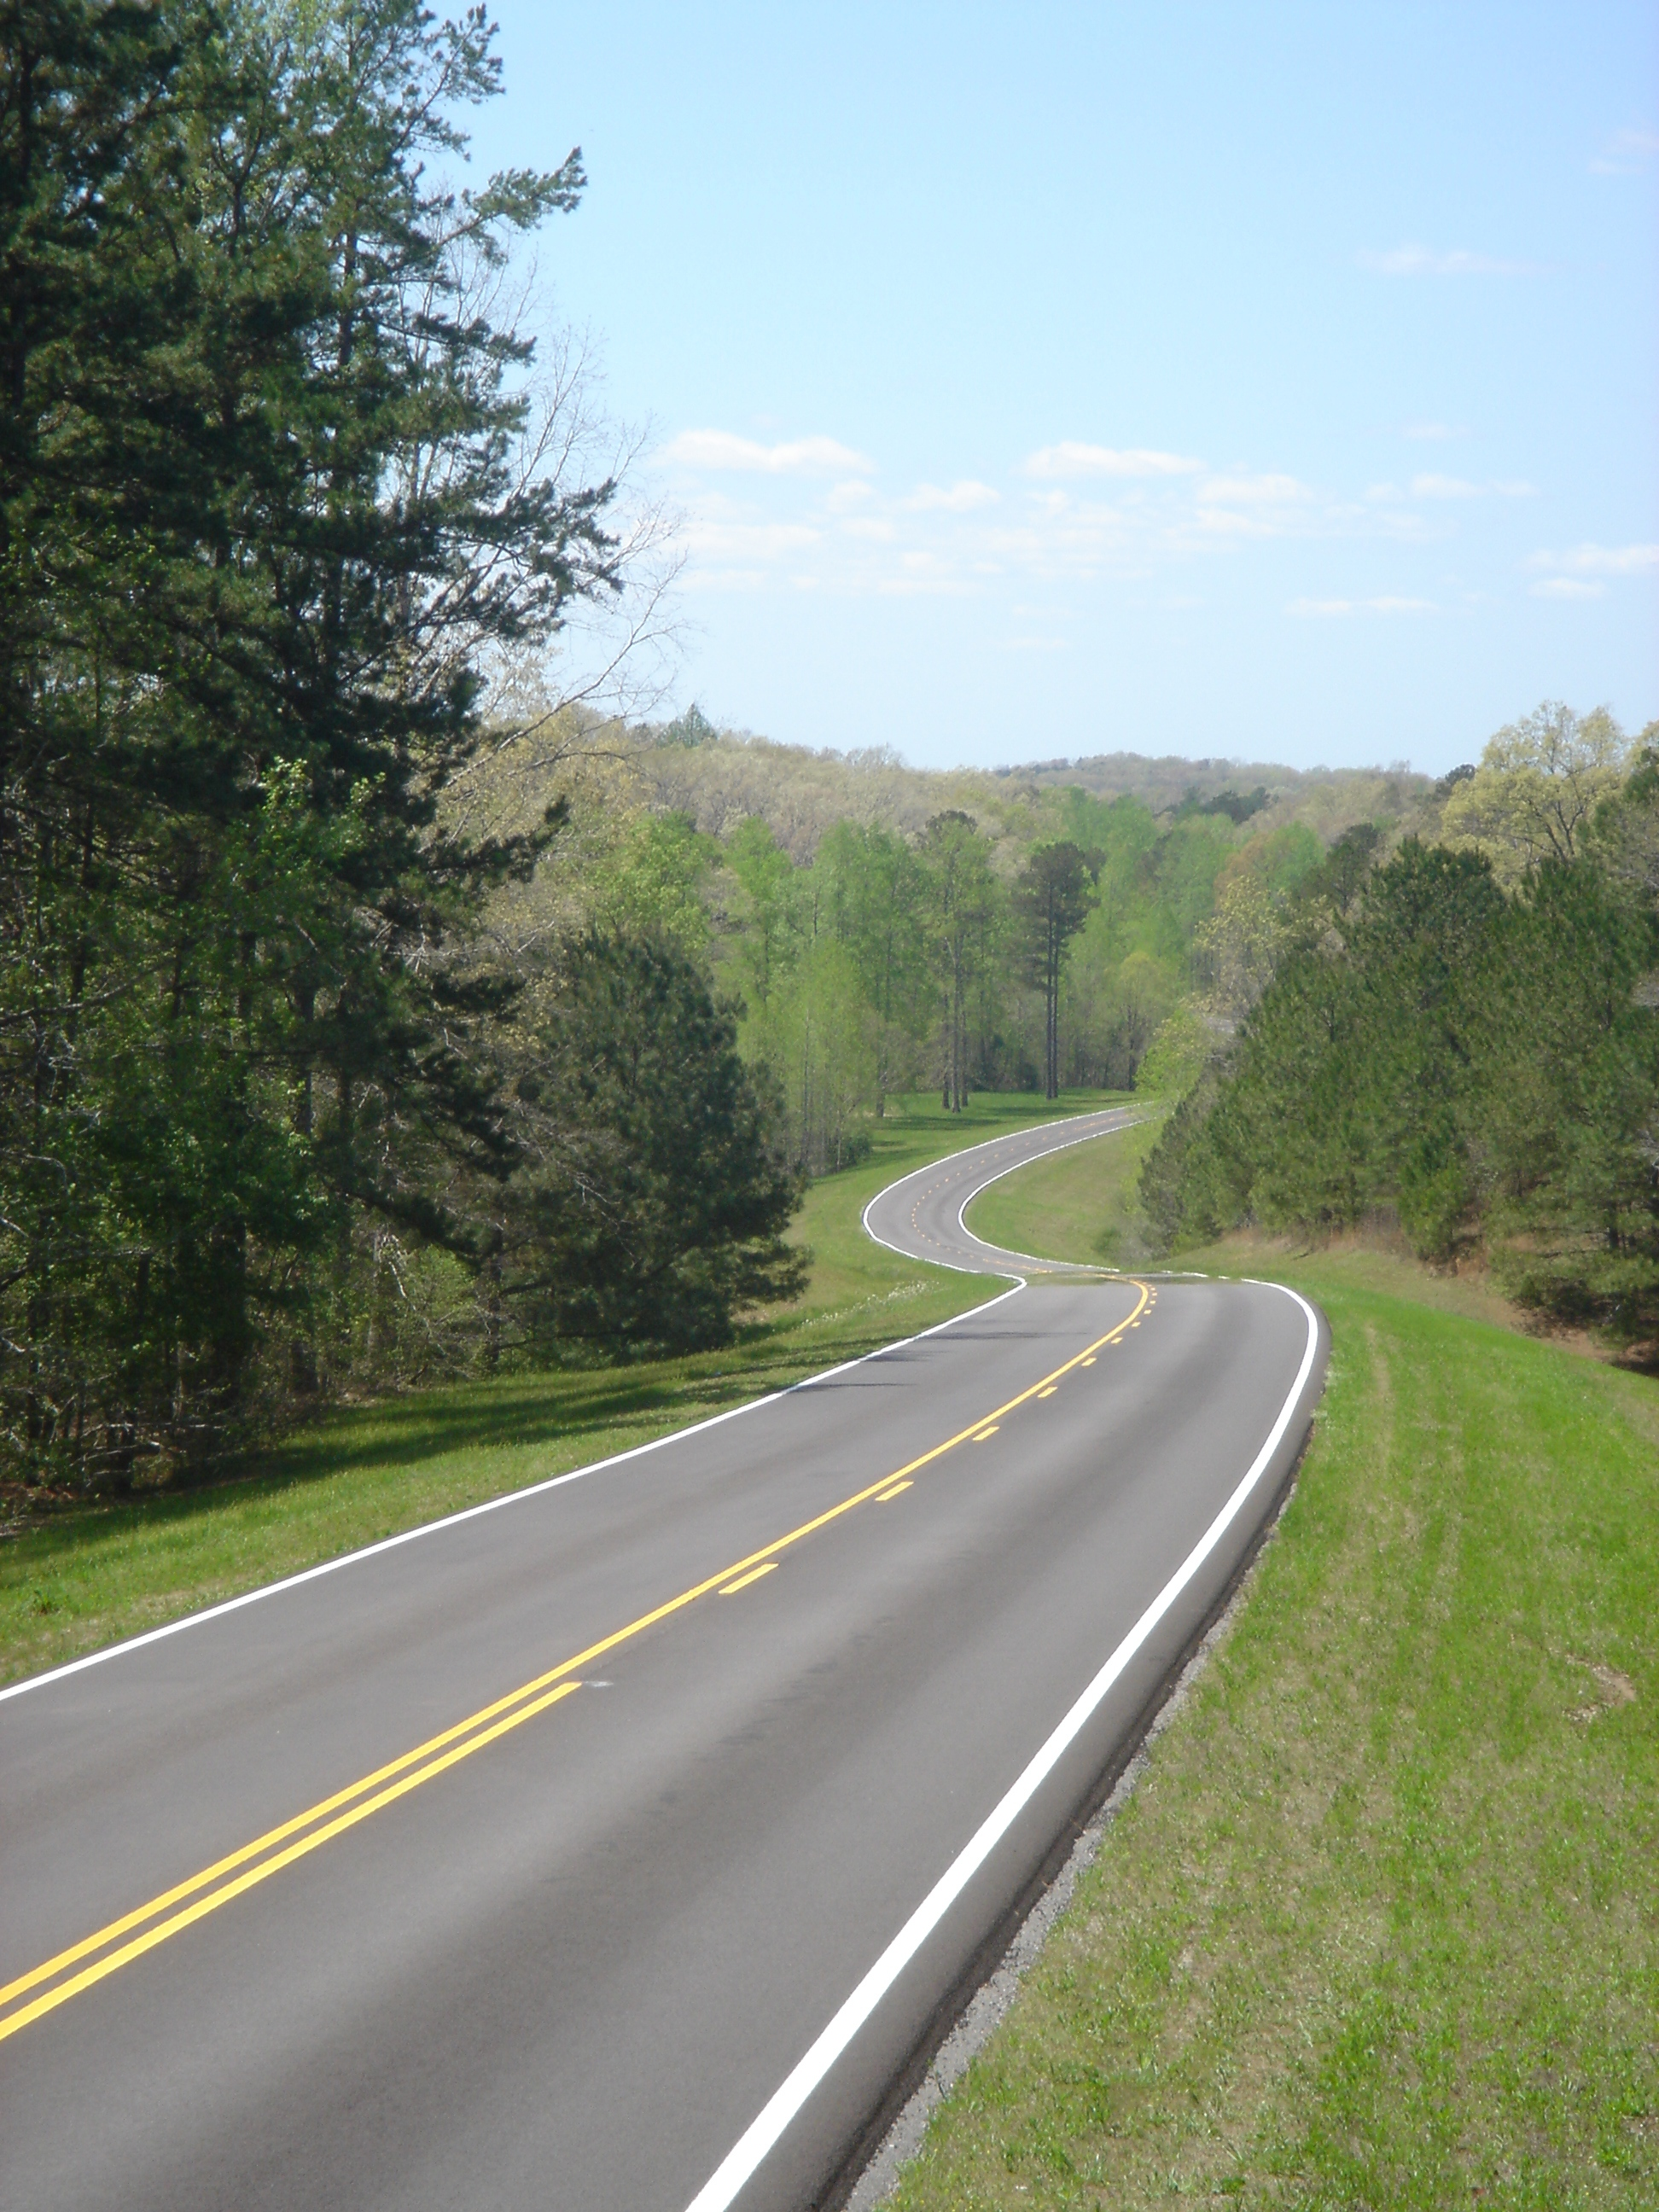 Natchez Trace Parkway – Travel guide at Wikivoyage